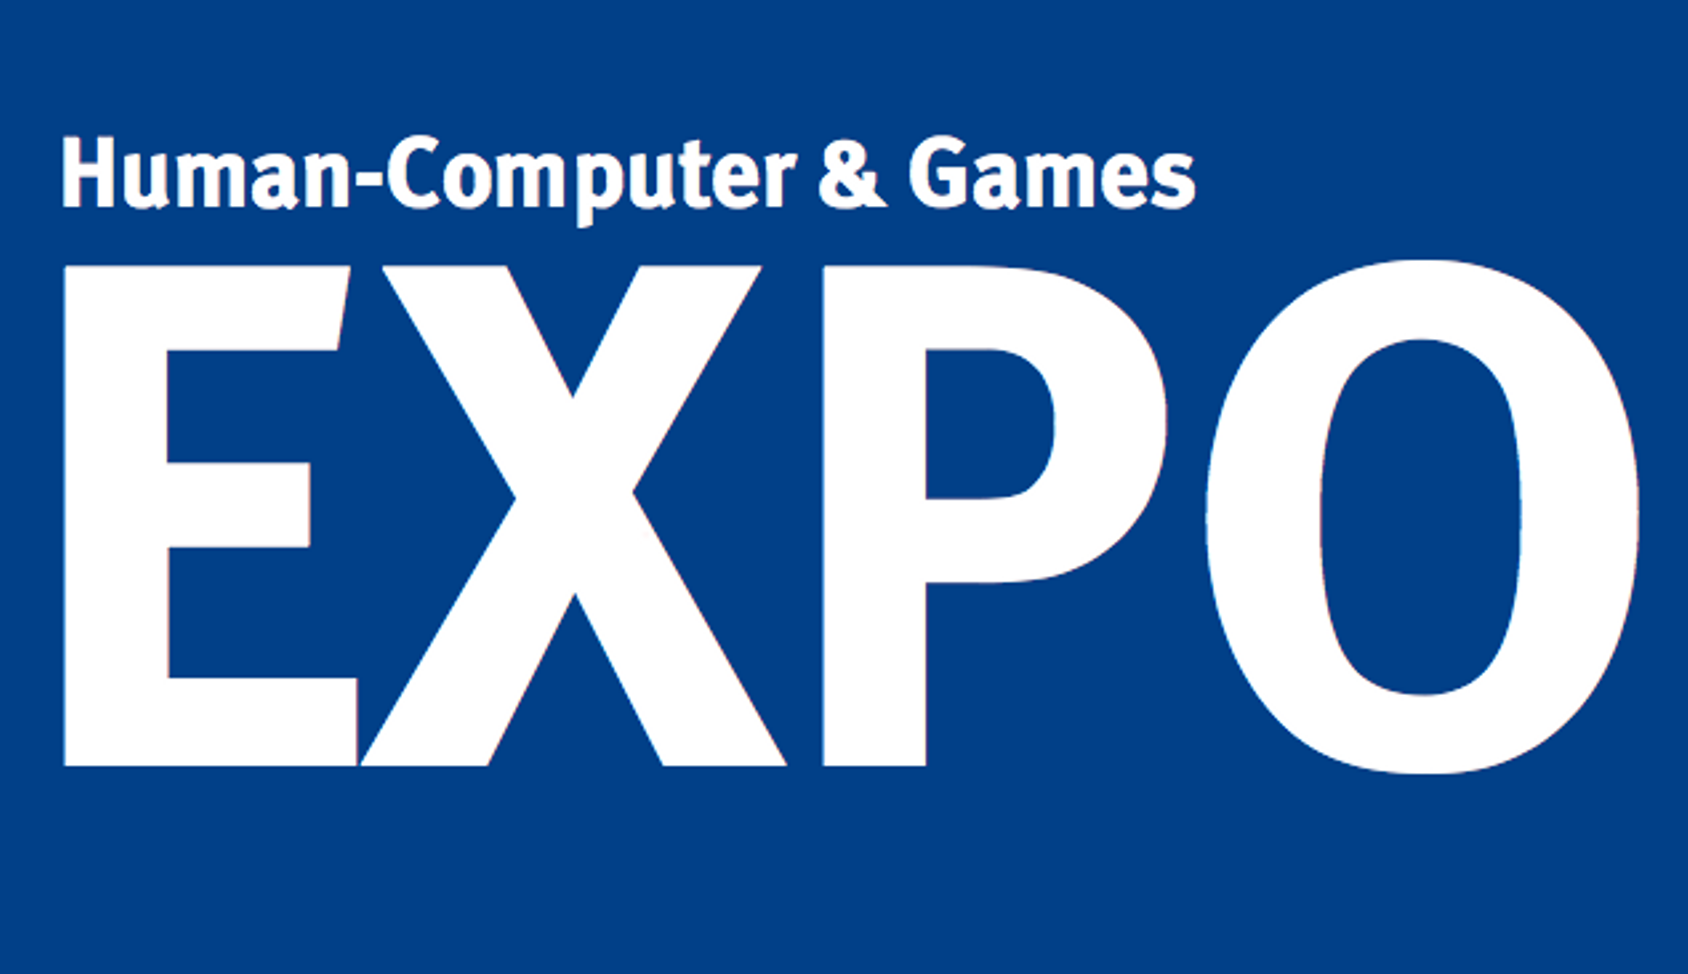 Human-Computer & Games EXPO 2018 in Würzburg